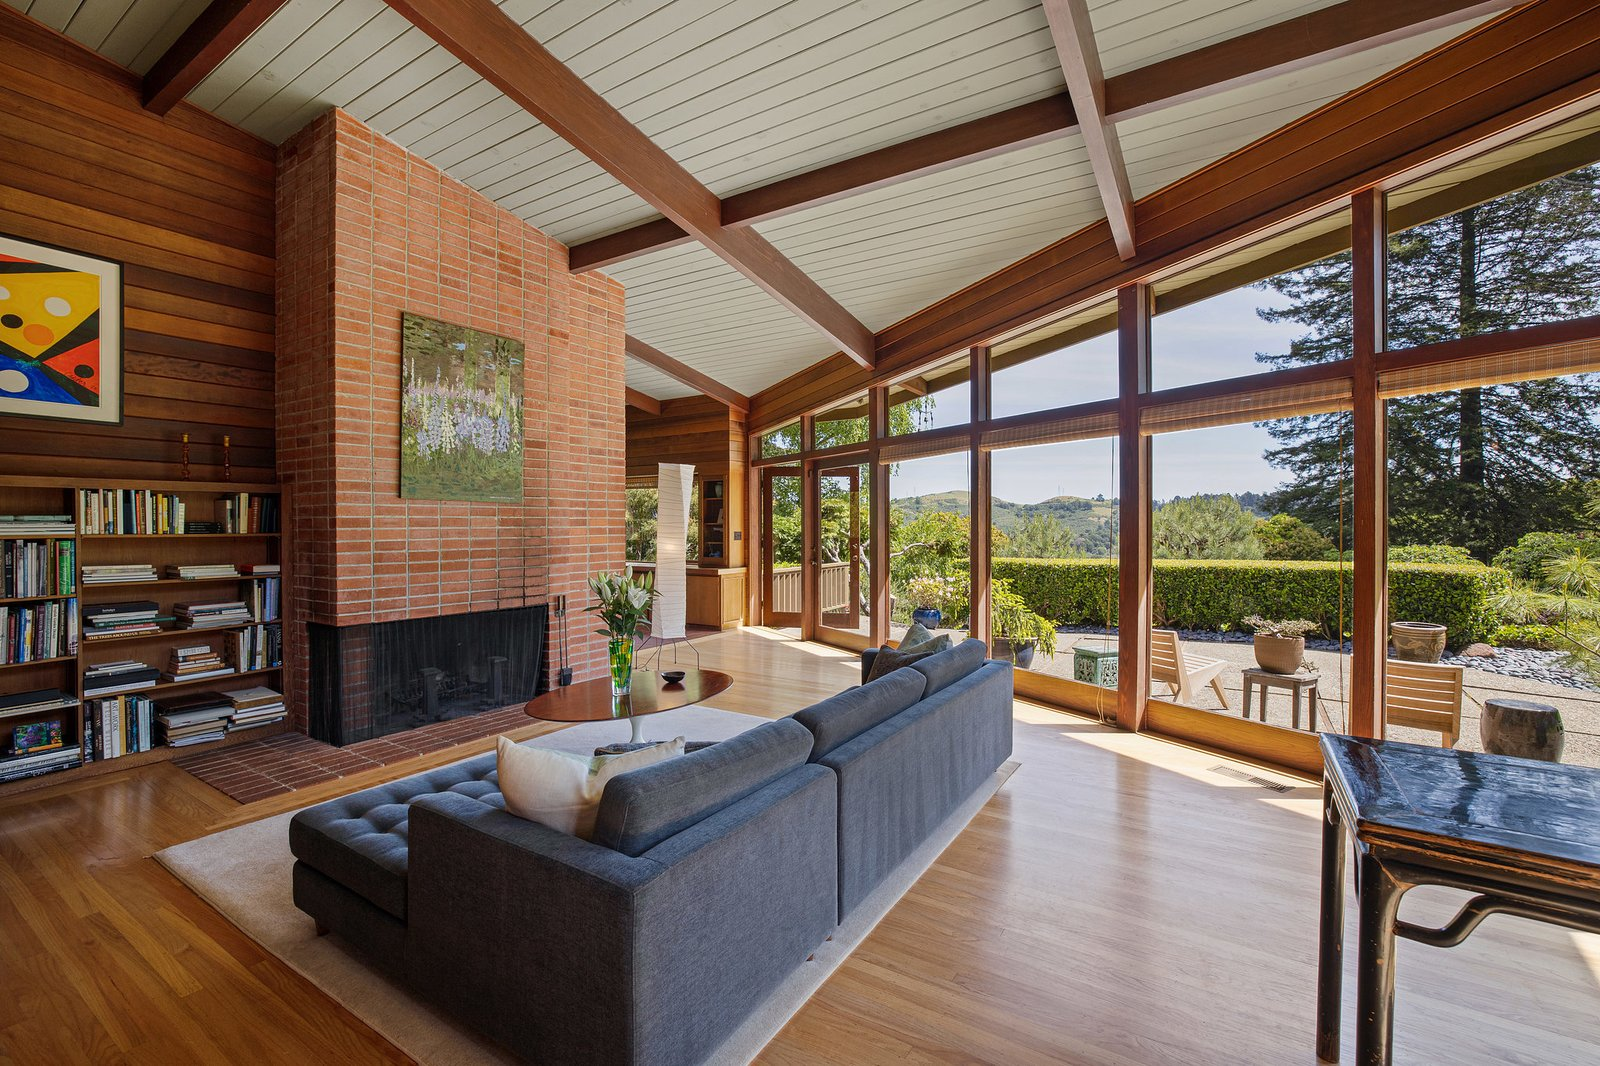 A closer look at the living area and original brick fireplace. Floor-to-ceiling windows enclose the room on two sides, with French doors opening to the patio.  Photo 4 of 21 in An Impeccable Midcentury Compound in the Berkeley Hills Wants $3.4M